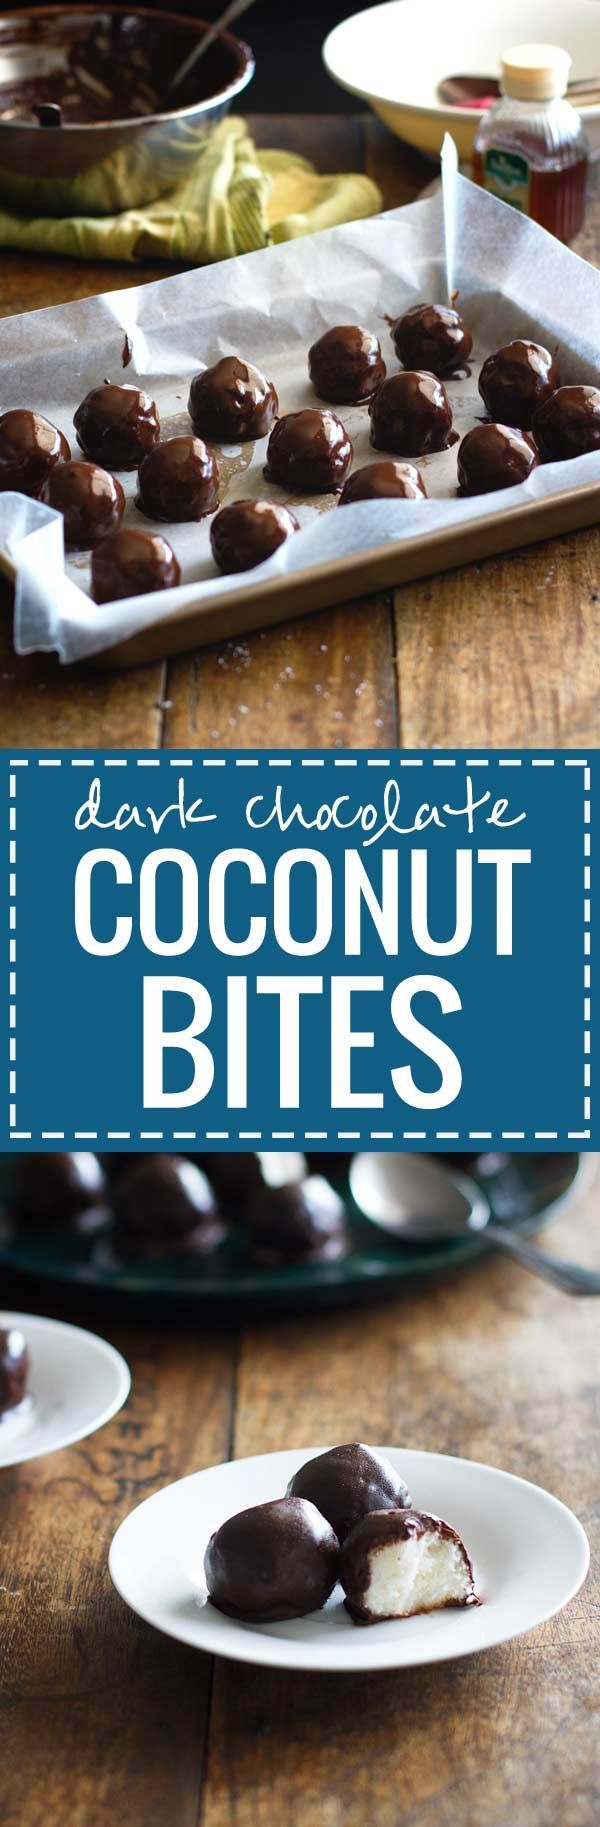 Dark Chocolate Coconut Bites - These dark chocolate coconut bites look like cute truffles and require just four ingredients. 130 calories of natural sweetness.